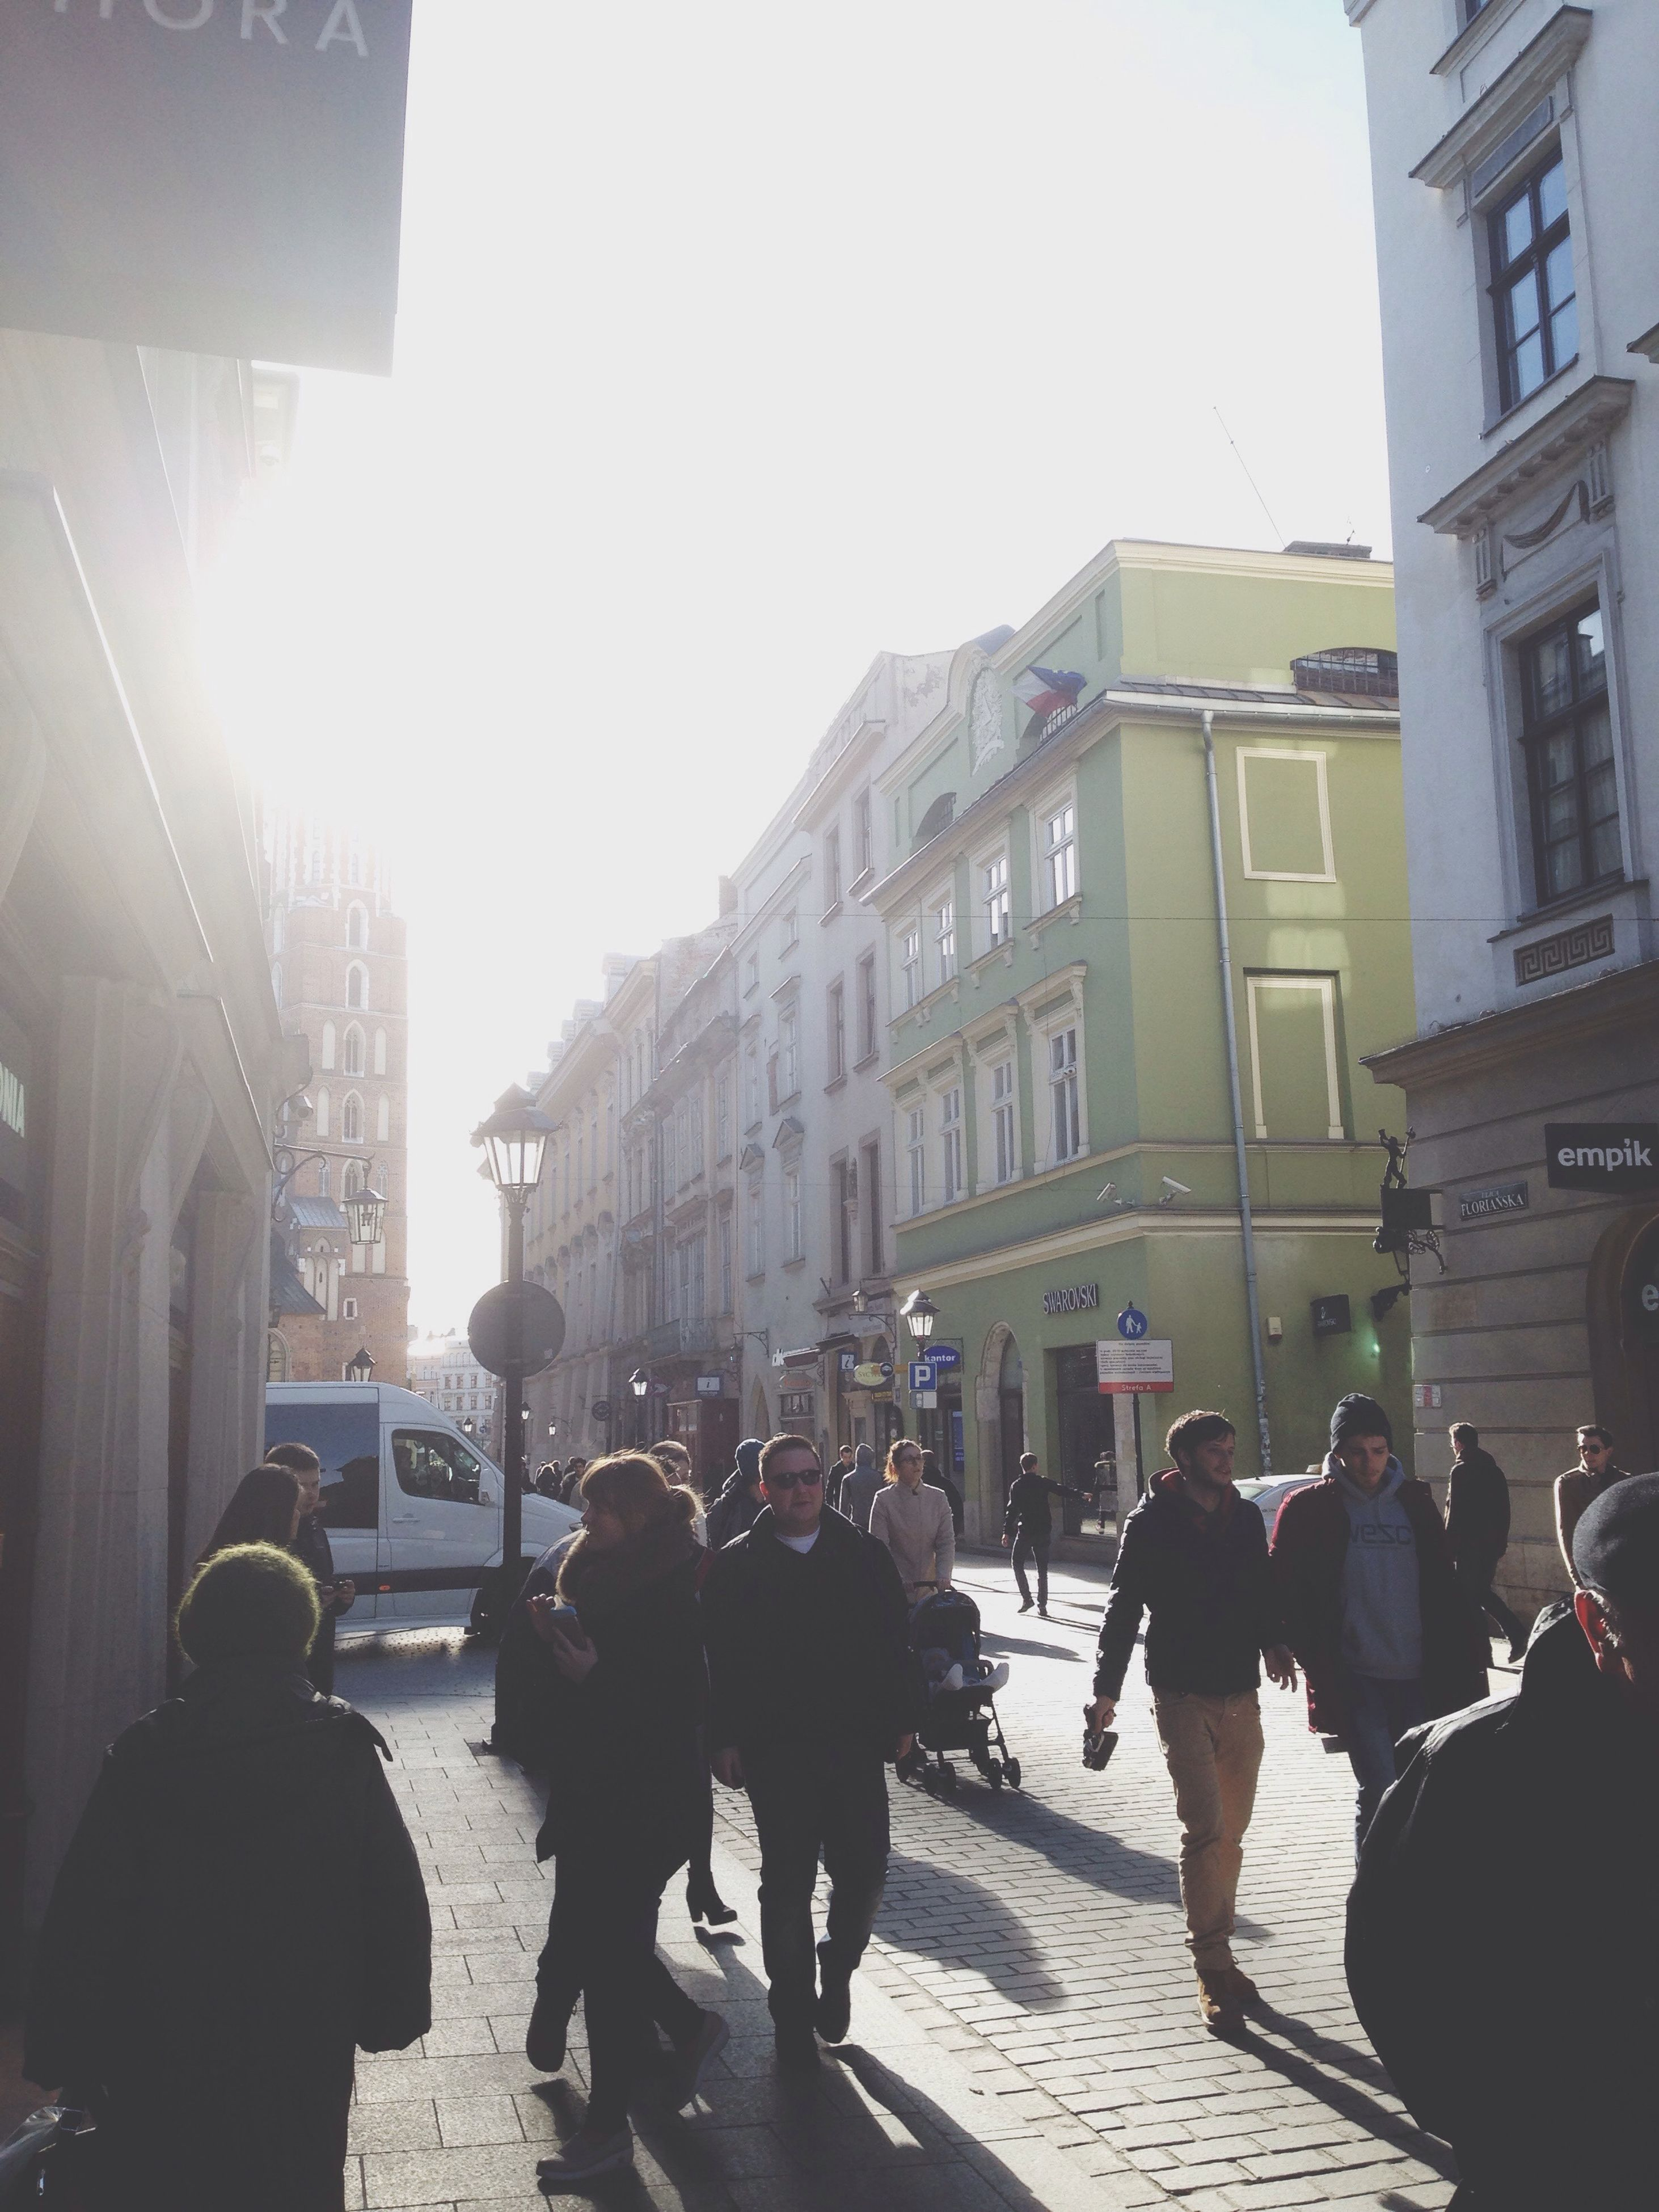 building exterior, architecture, built structure, large group of people, street, men, clear sky, lifestyles, city, walking, person, city life, city street, car, leisure activity, transportation, sunlight, medium group of people, road